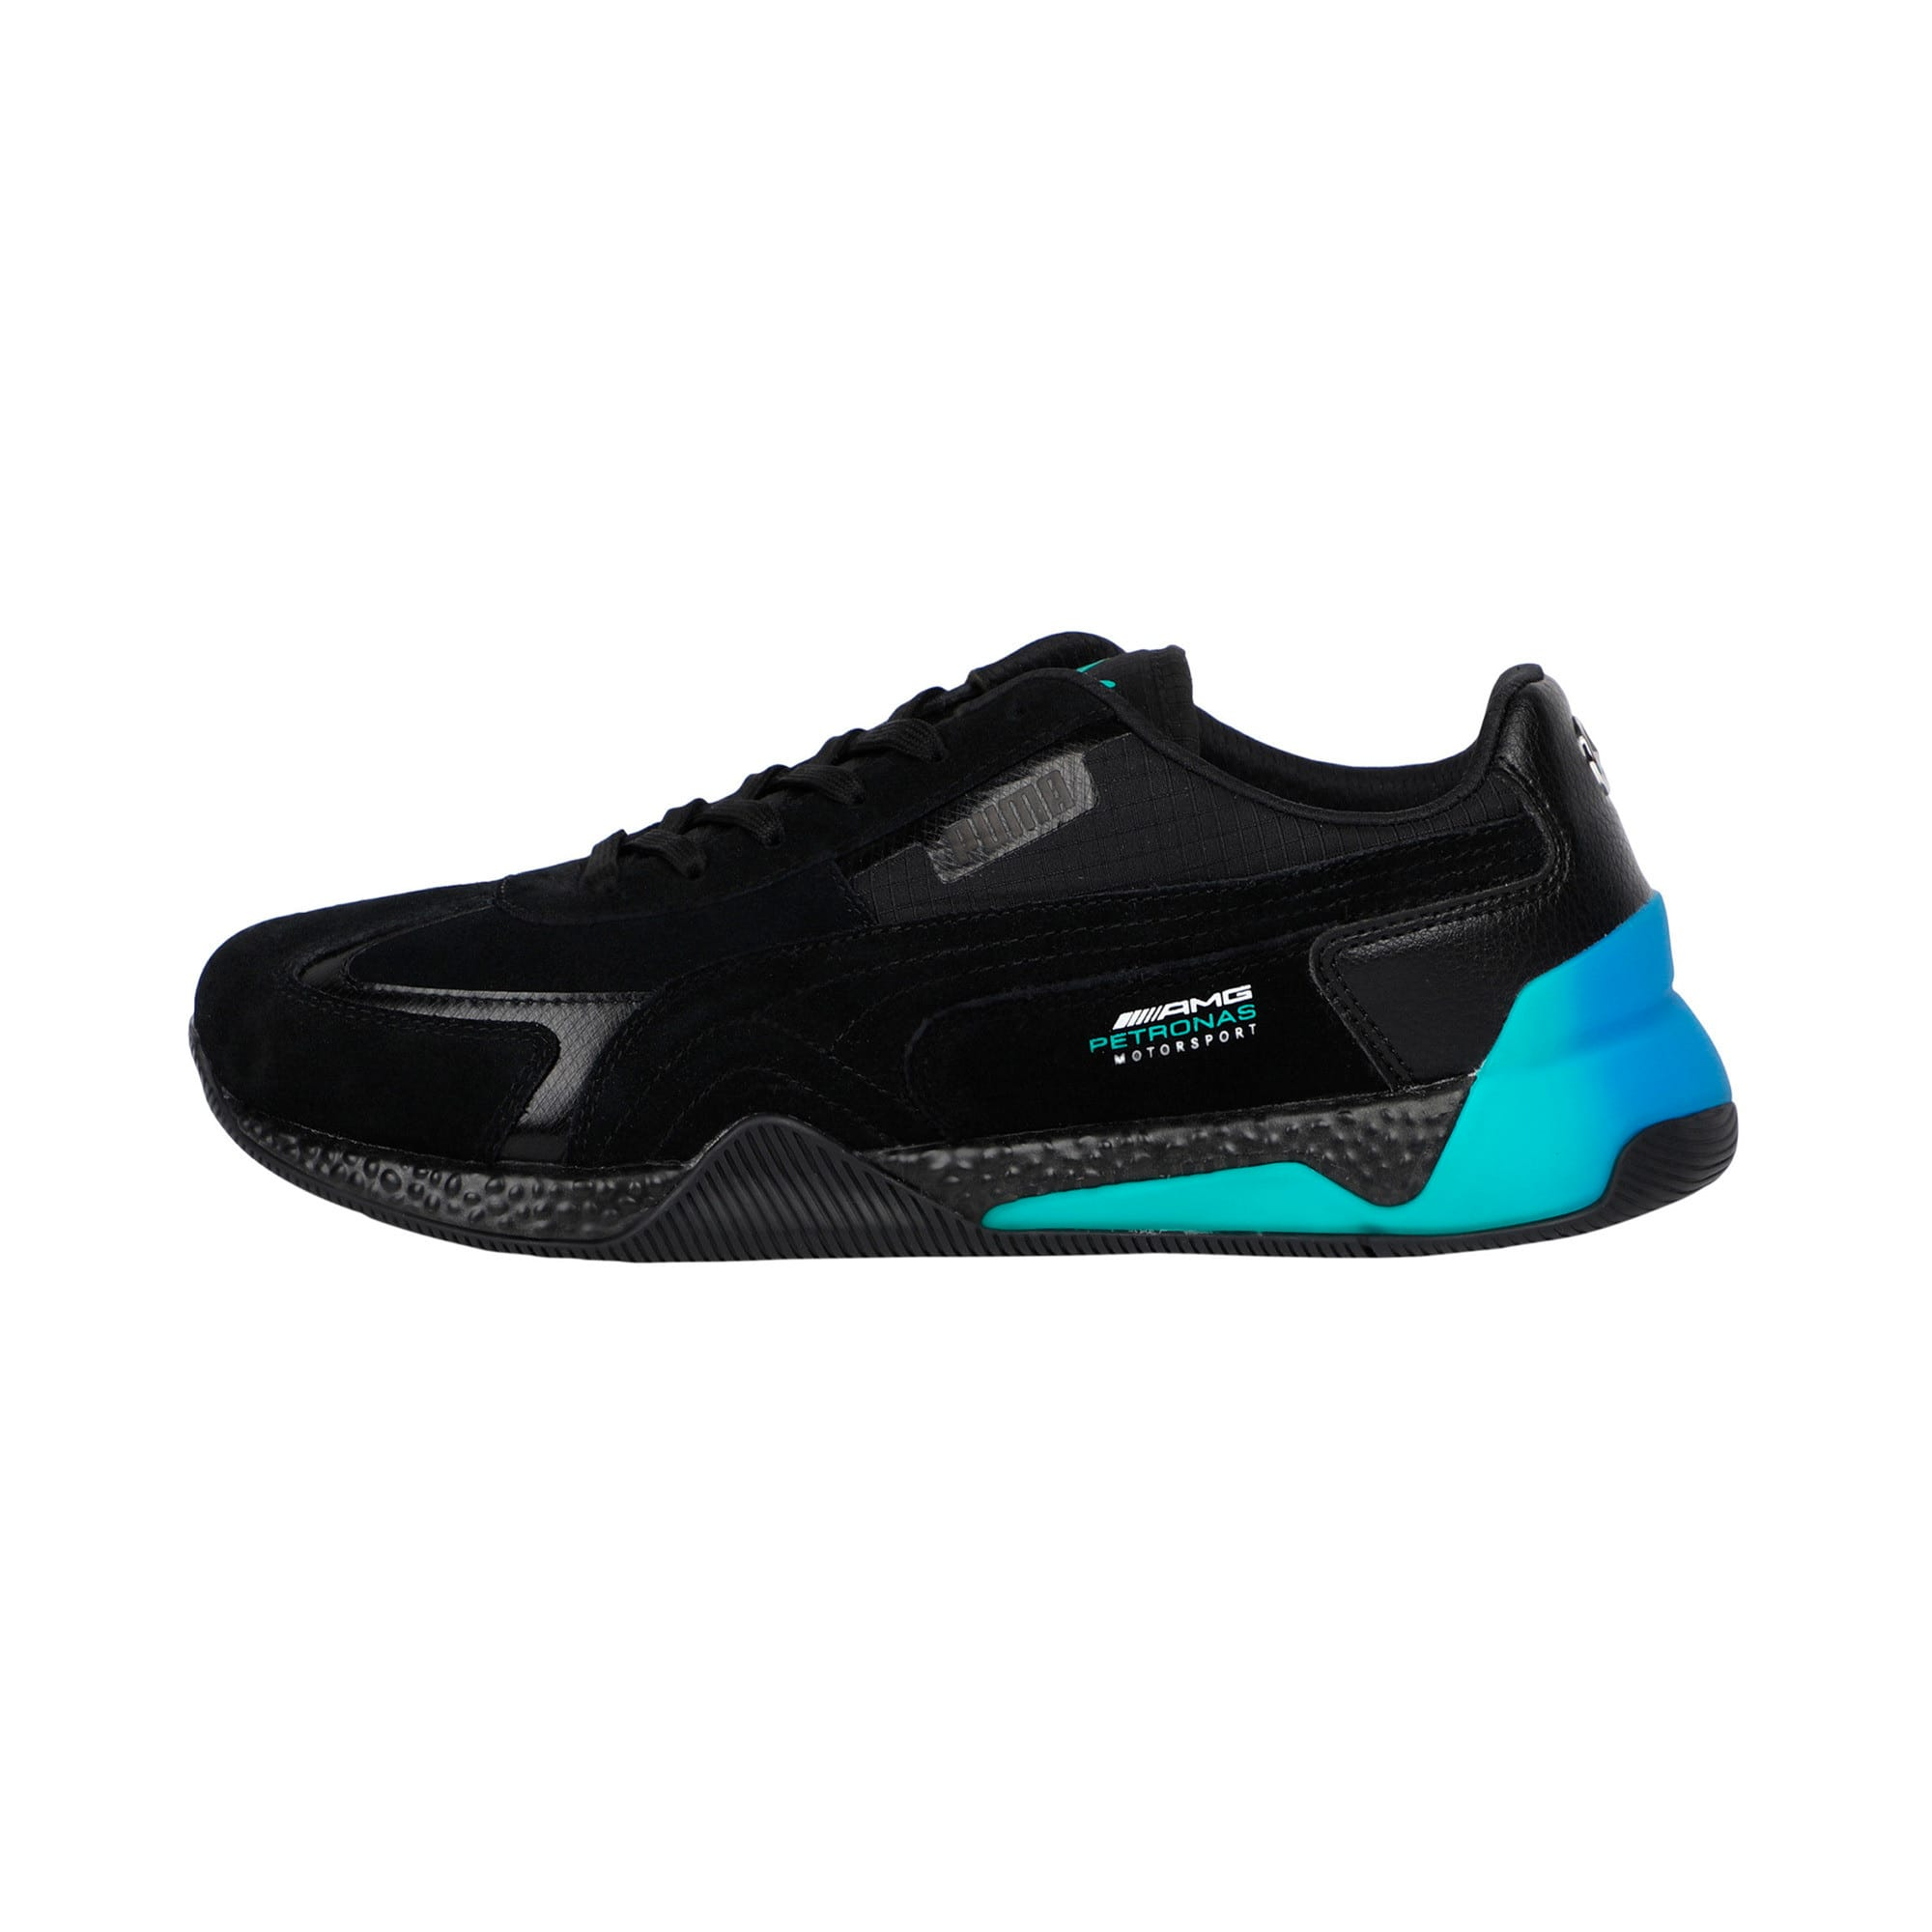 Details about Puma Mercedes AMG Speed Hybrid Men's Sneakers 306384 01